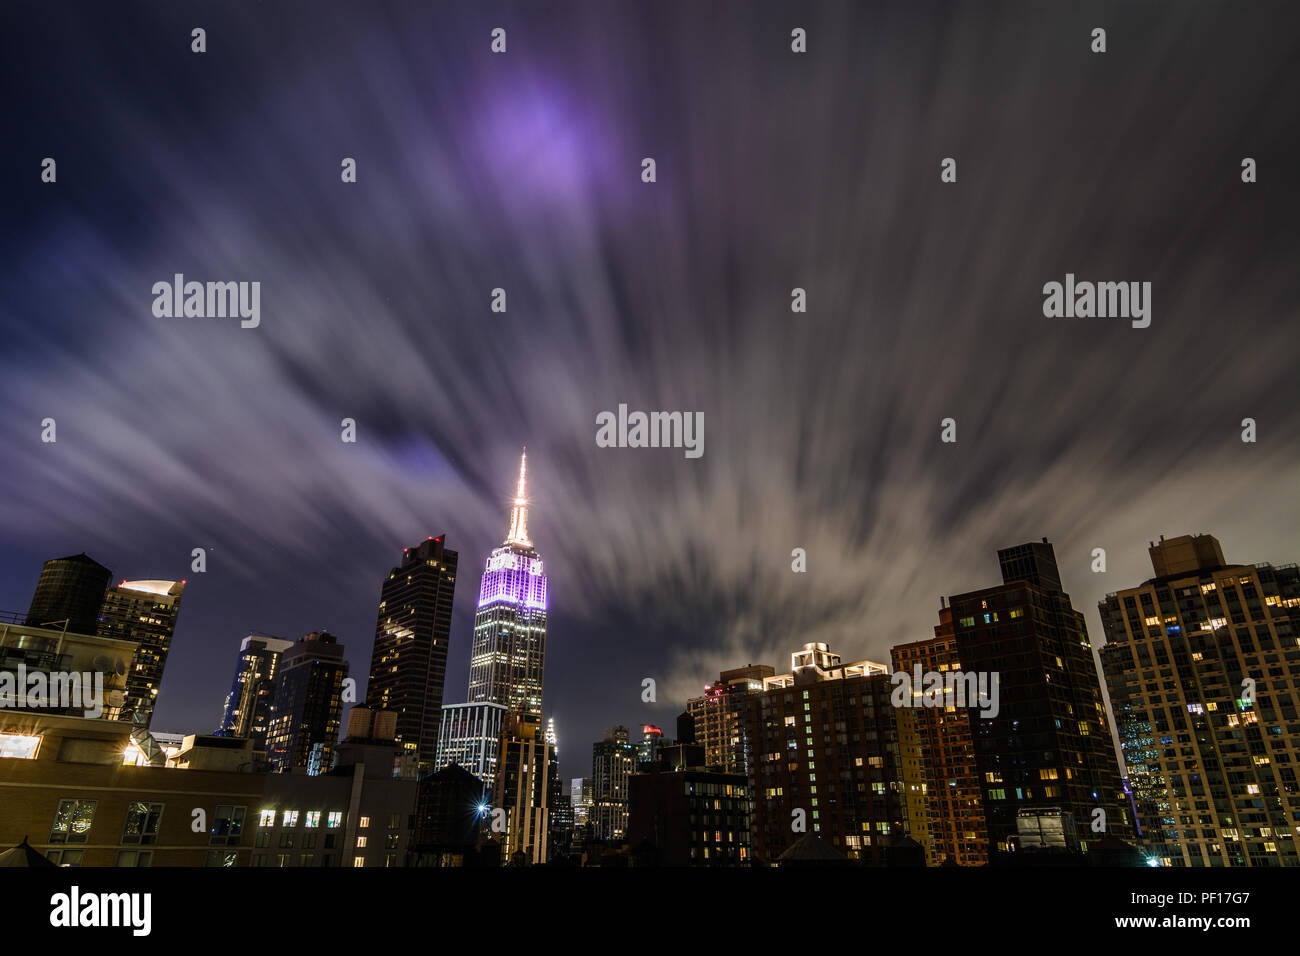 The Empire State Building lit up at night as fast moving clouds stream above the Chelsea neighborhood of New York City. - Stock Image